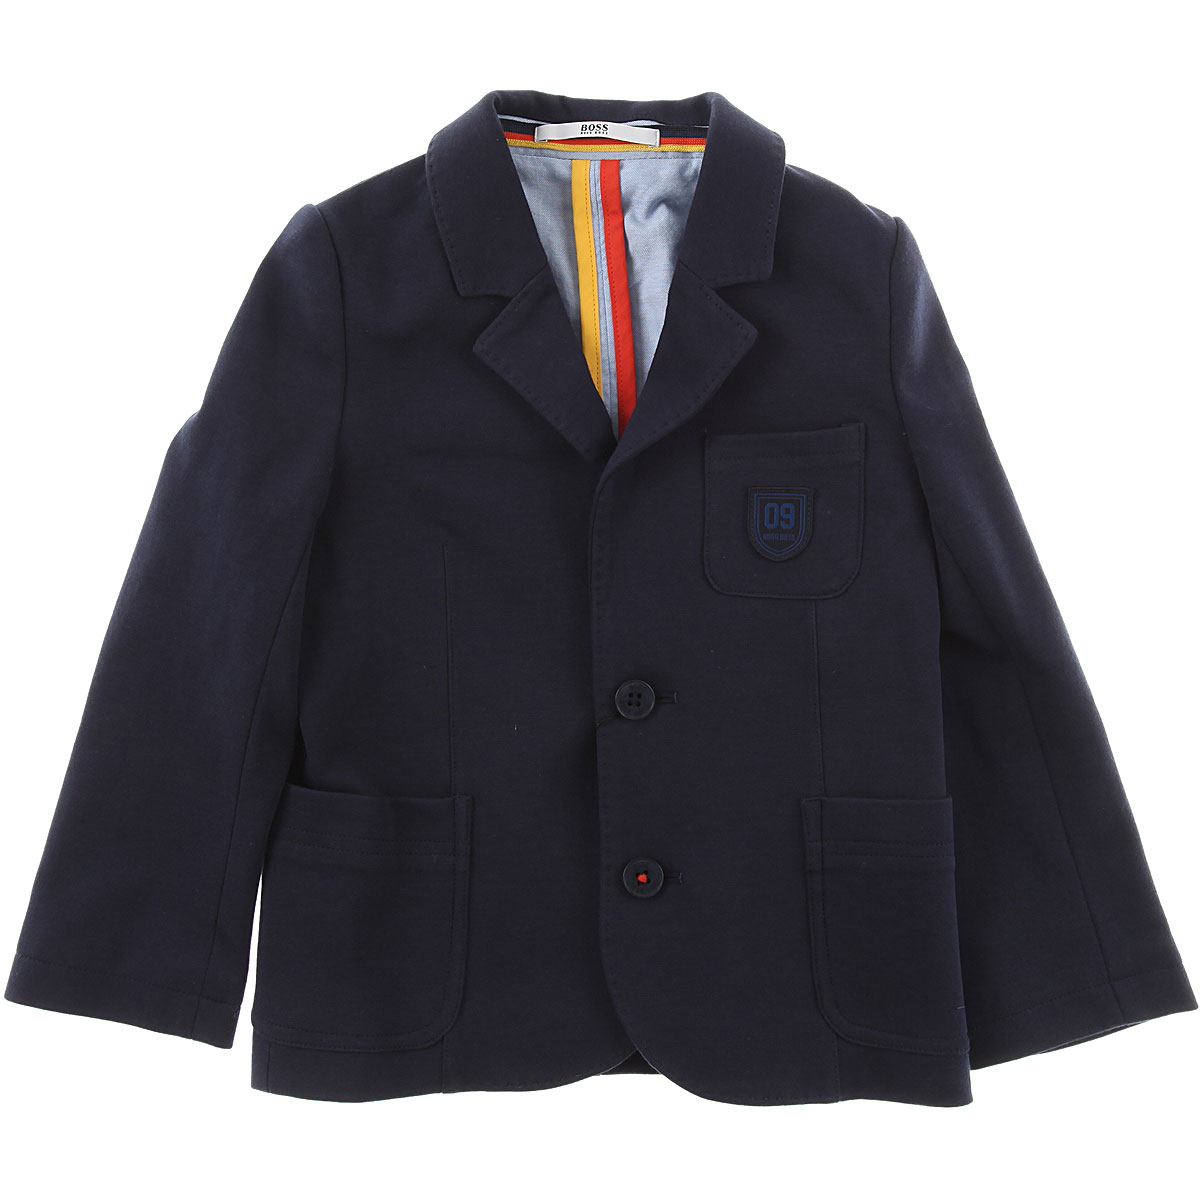 Image of Hugo Boss Baby Jacket for Boys, Navy Blue, Cotton, 2017, 12M 18M 2Y 3Y